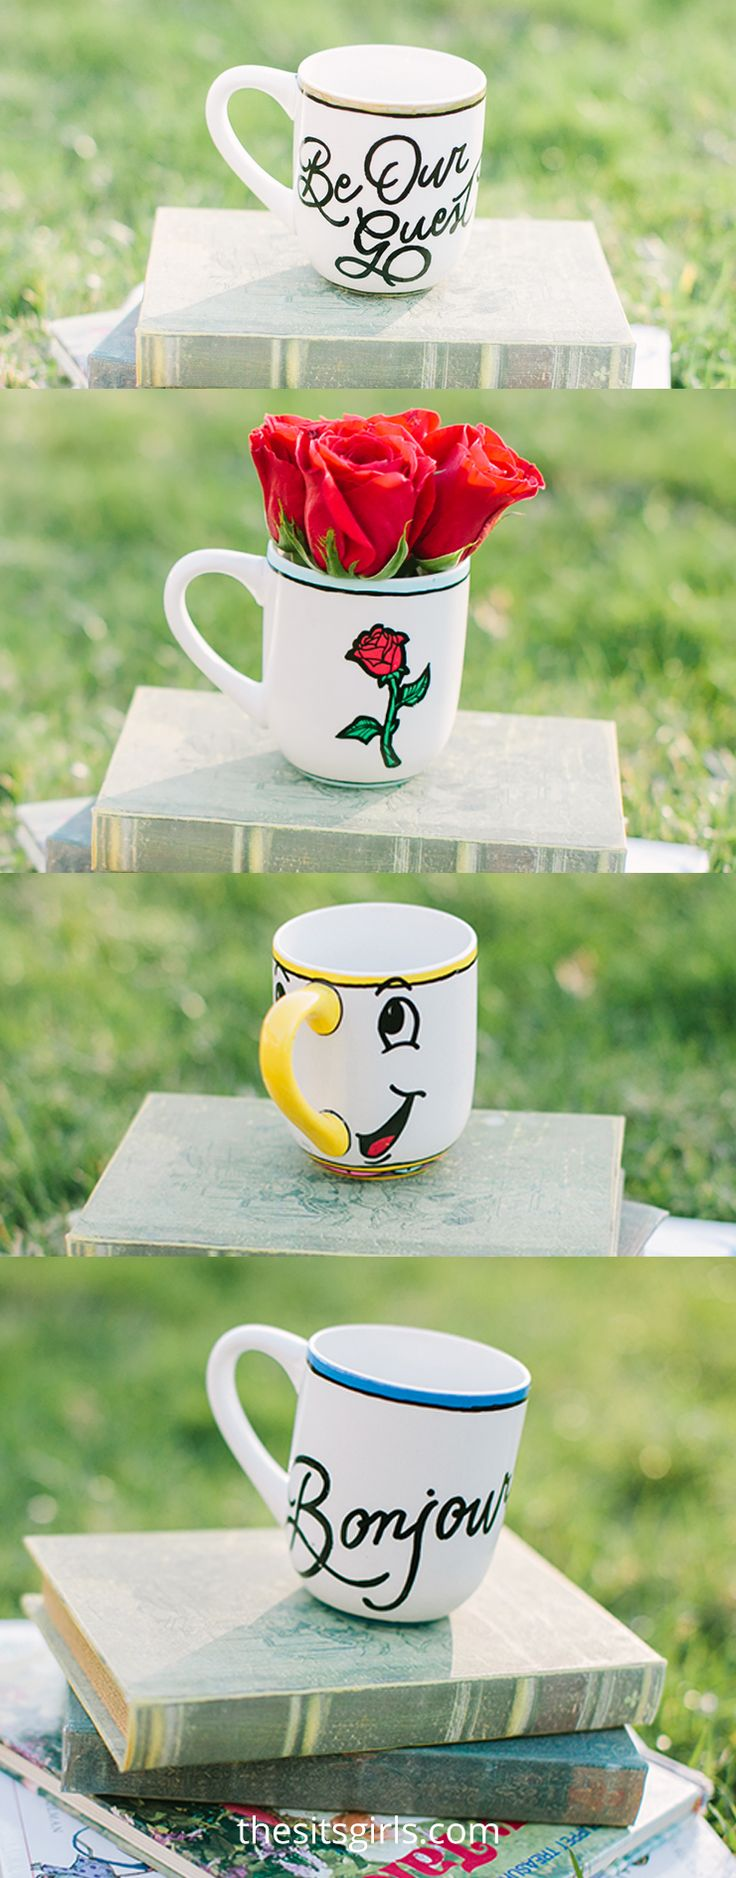 DIY Chip Mug | Beauty And The Beast Mugs | Chip Sharpie Mug